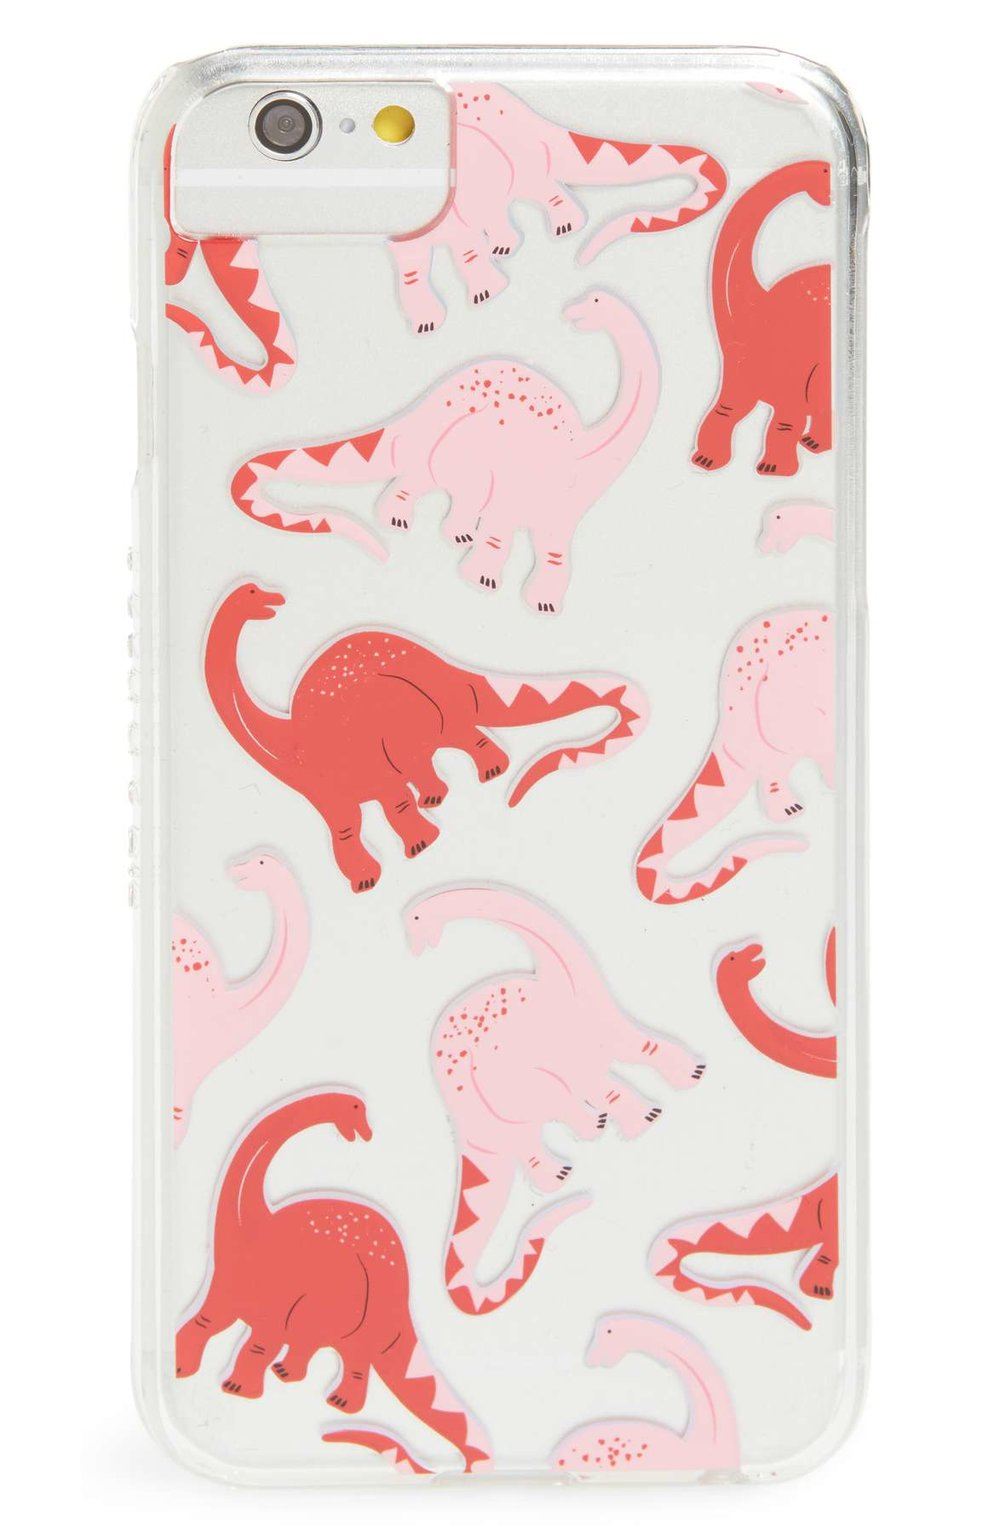 If you have a friend who loves switching out phone cases  this  one is for her.